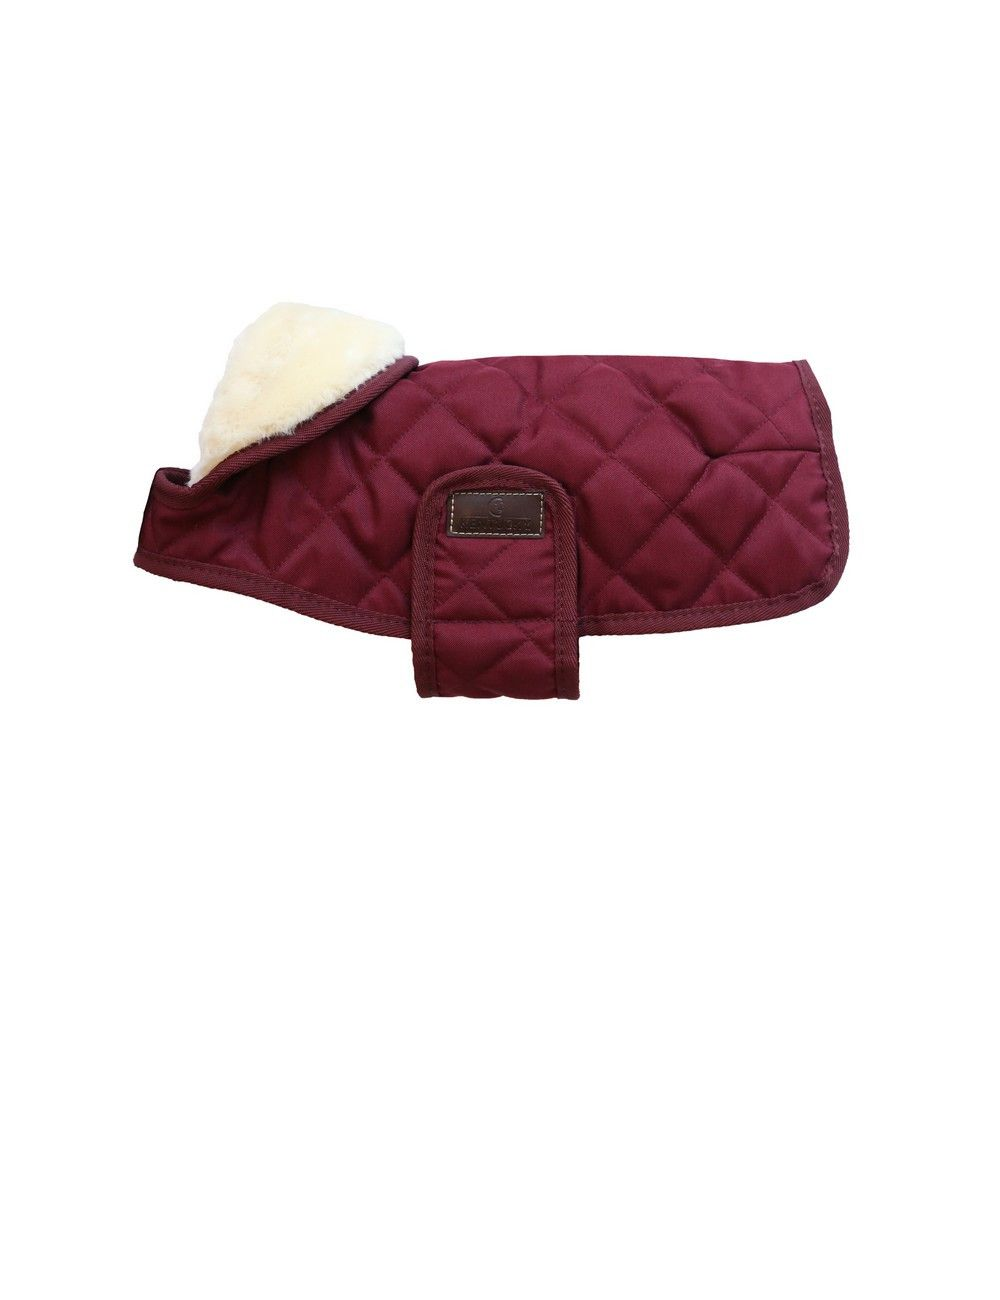 Kentucky Horsewear dog coat burgundy red - 1